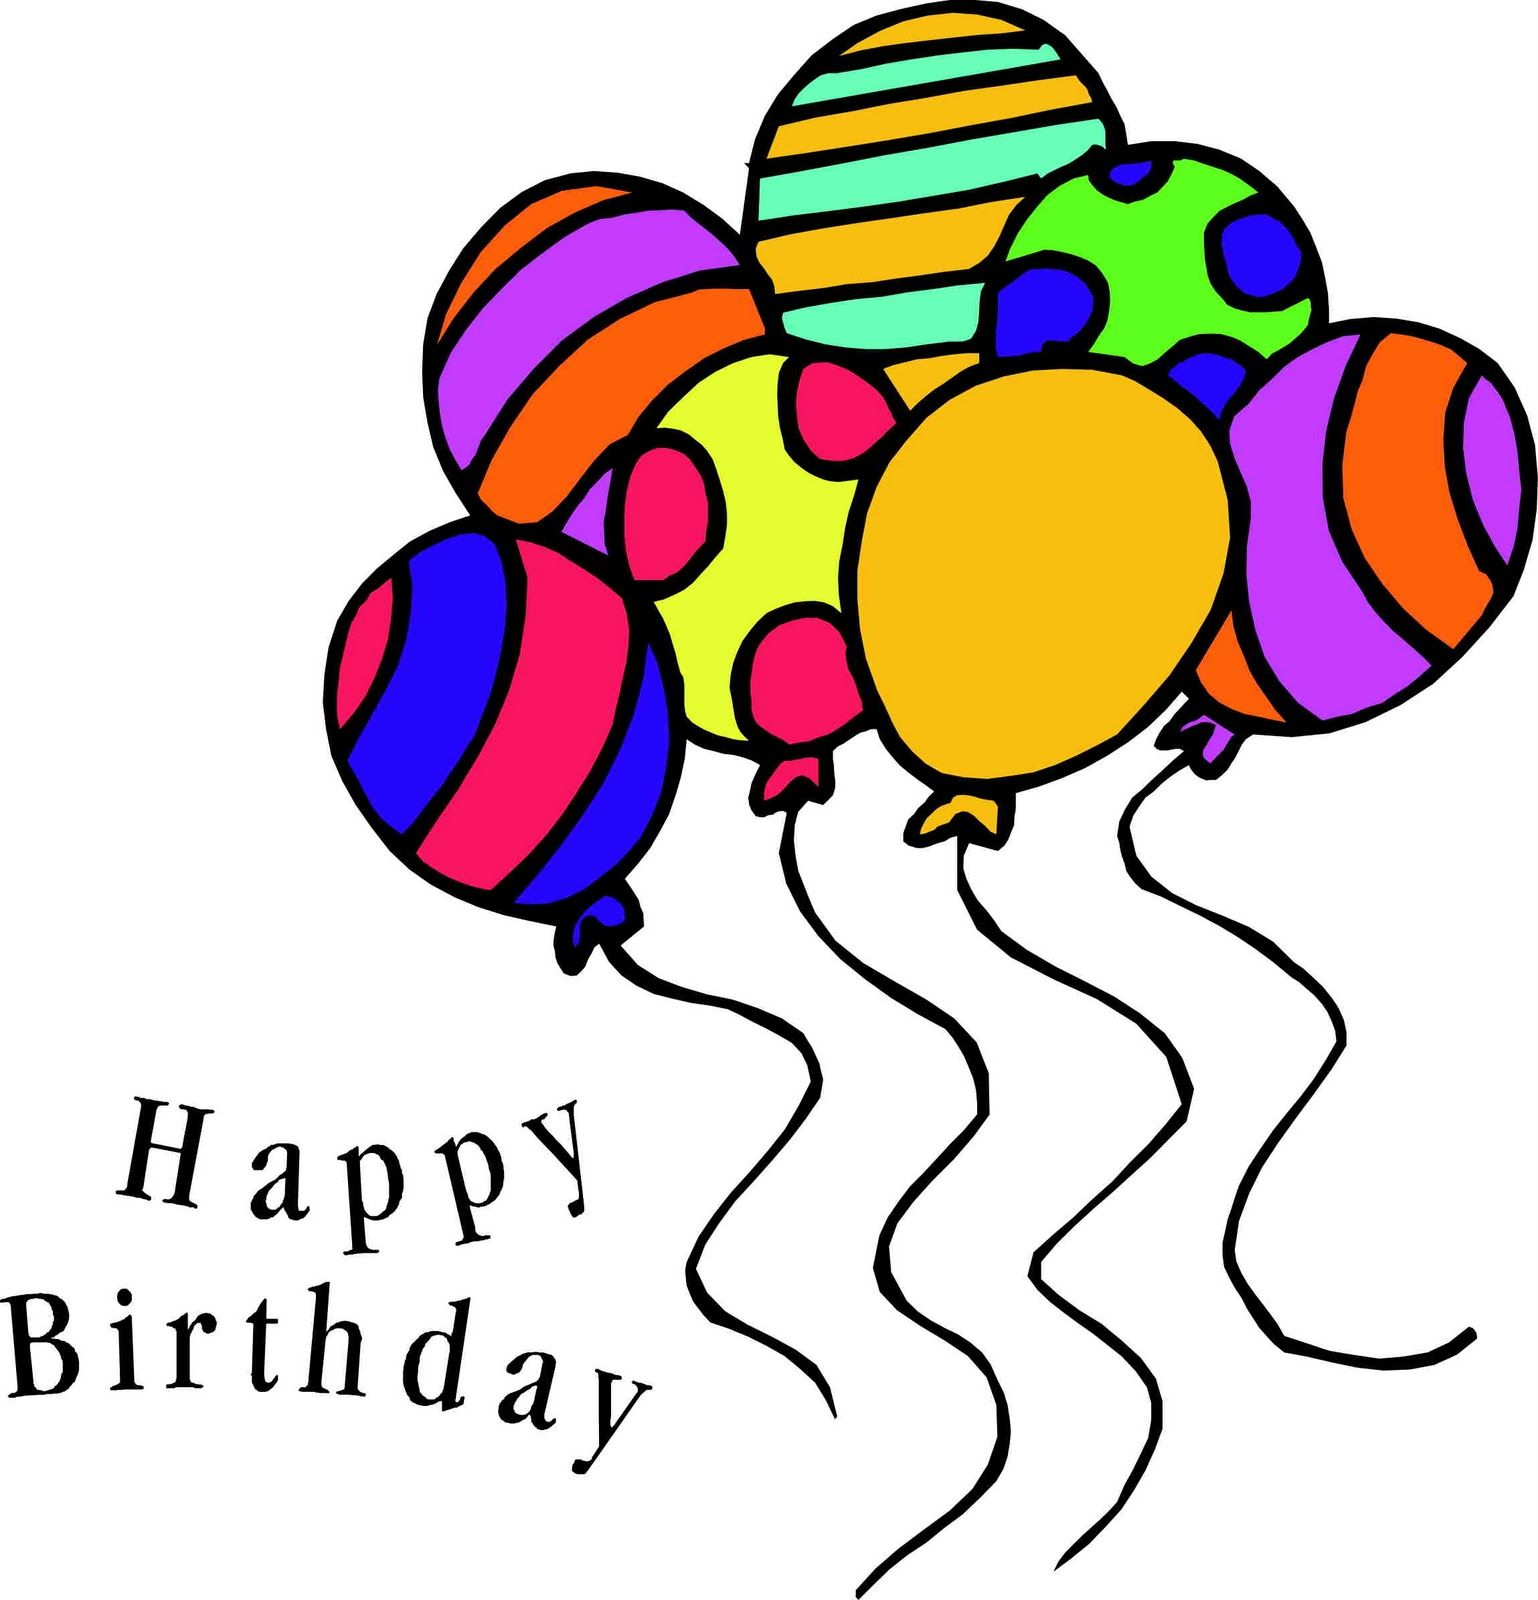 Free Birthday Free Happy Birthday Balloon Clip Art 2 Happy Birthday Clip Art Free Birthday Stuff Happy Birthday Balloons